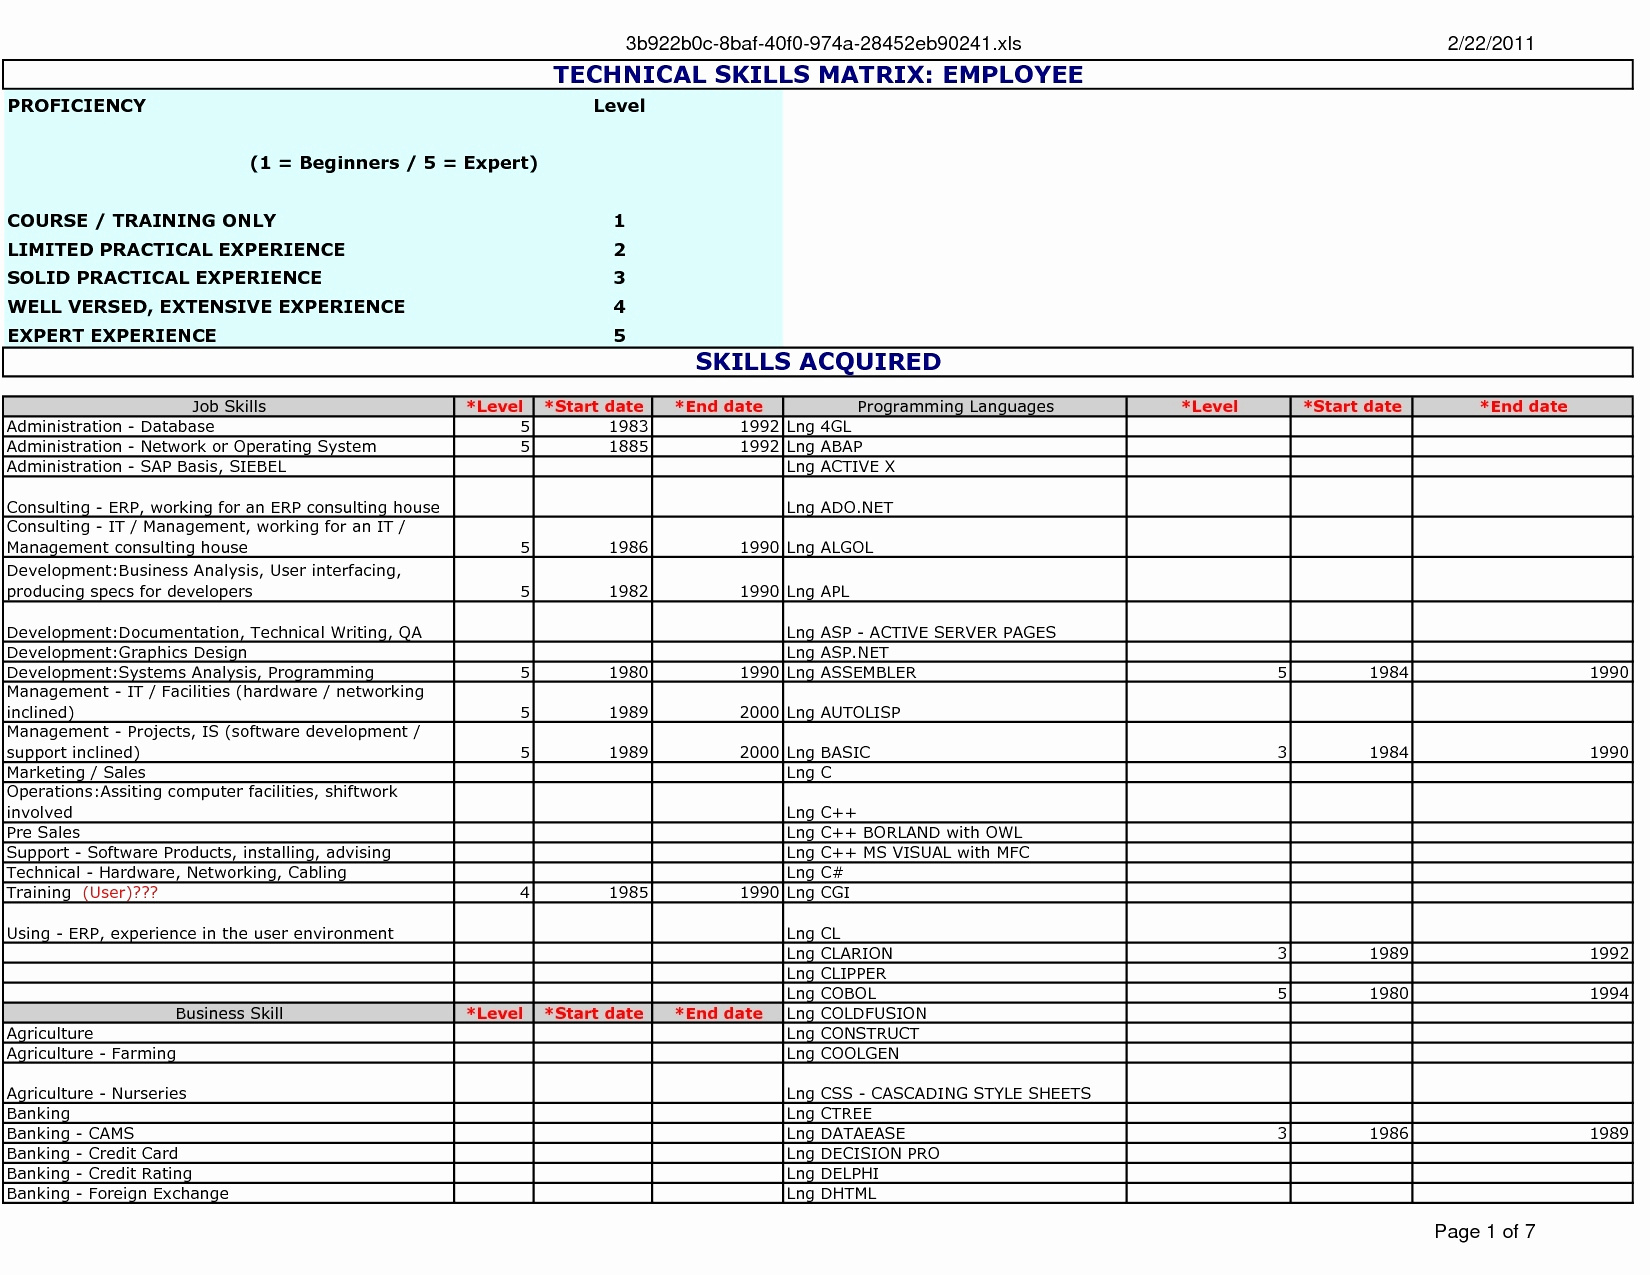 Skills Matrix Spreadsheet Regarding Skills Matrix Template Excel Luxury 41 Inspirational S Training